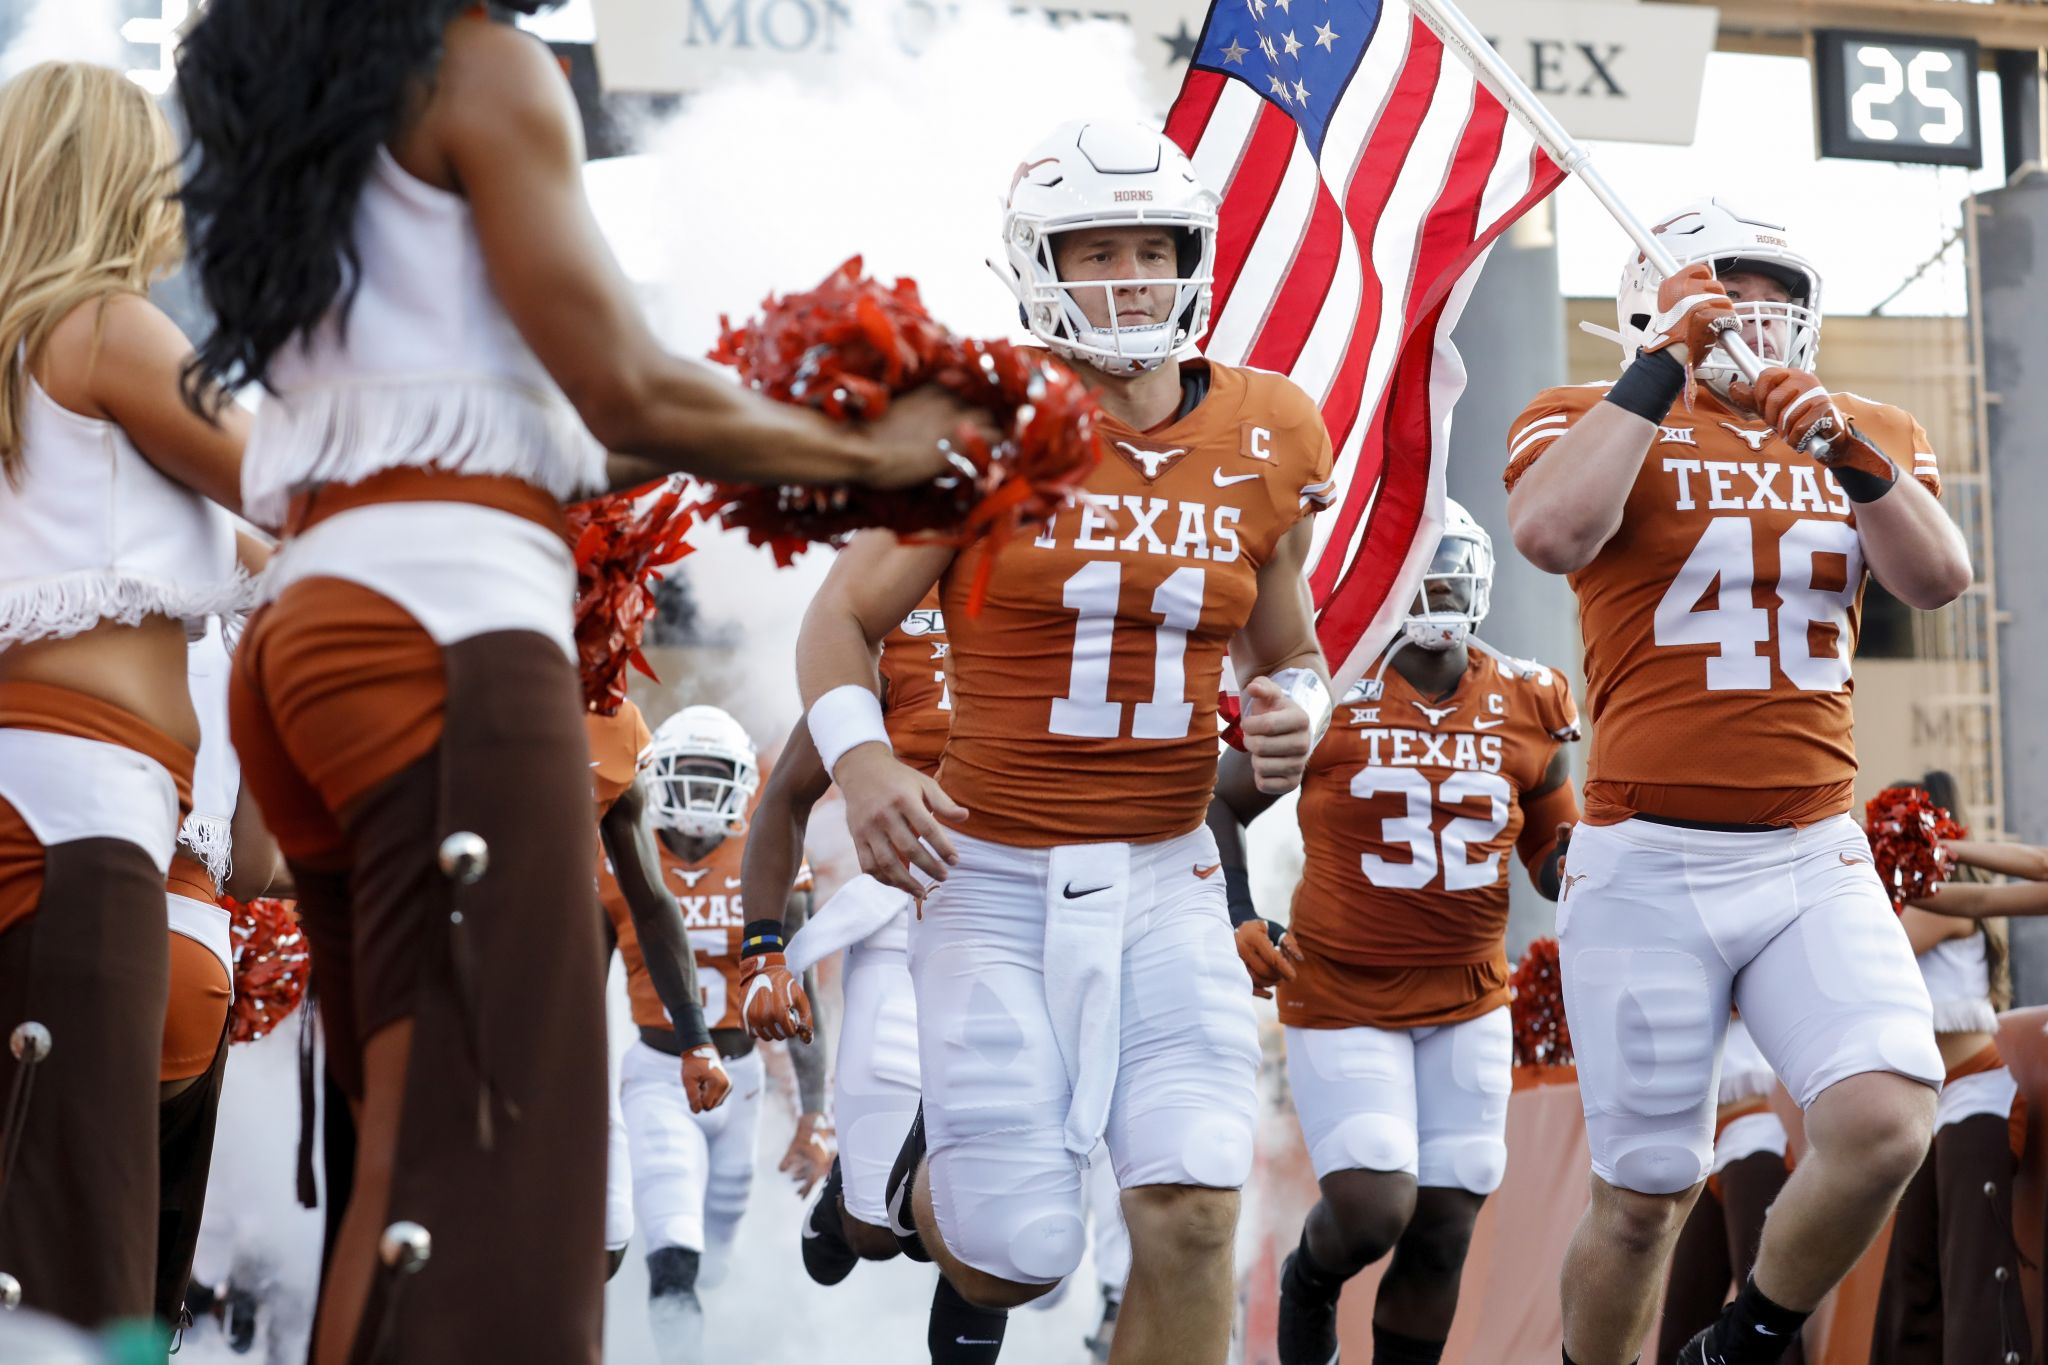 Texas linebacker's tragic death provides sobering reminder